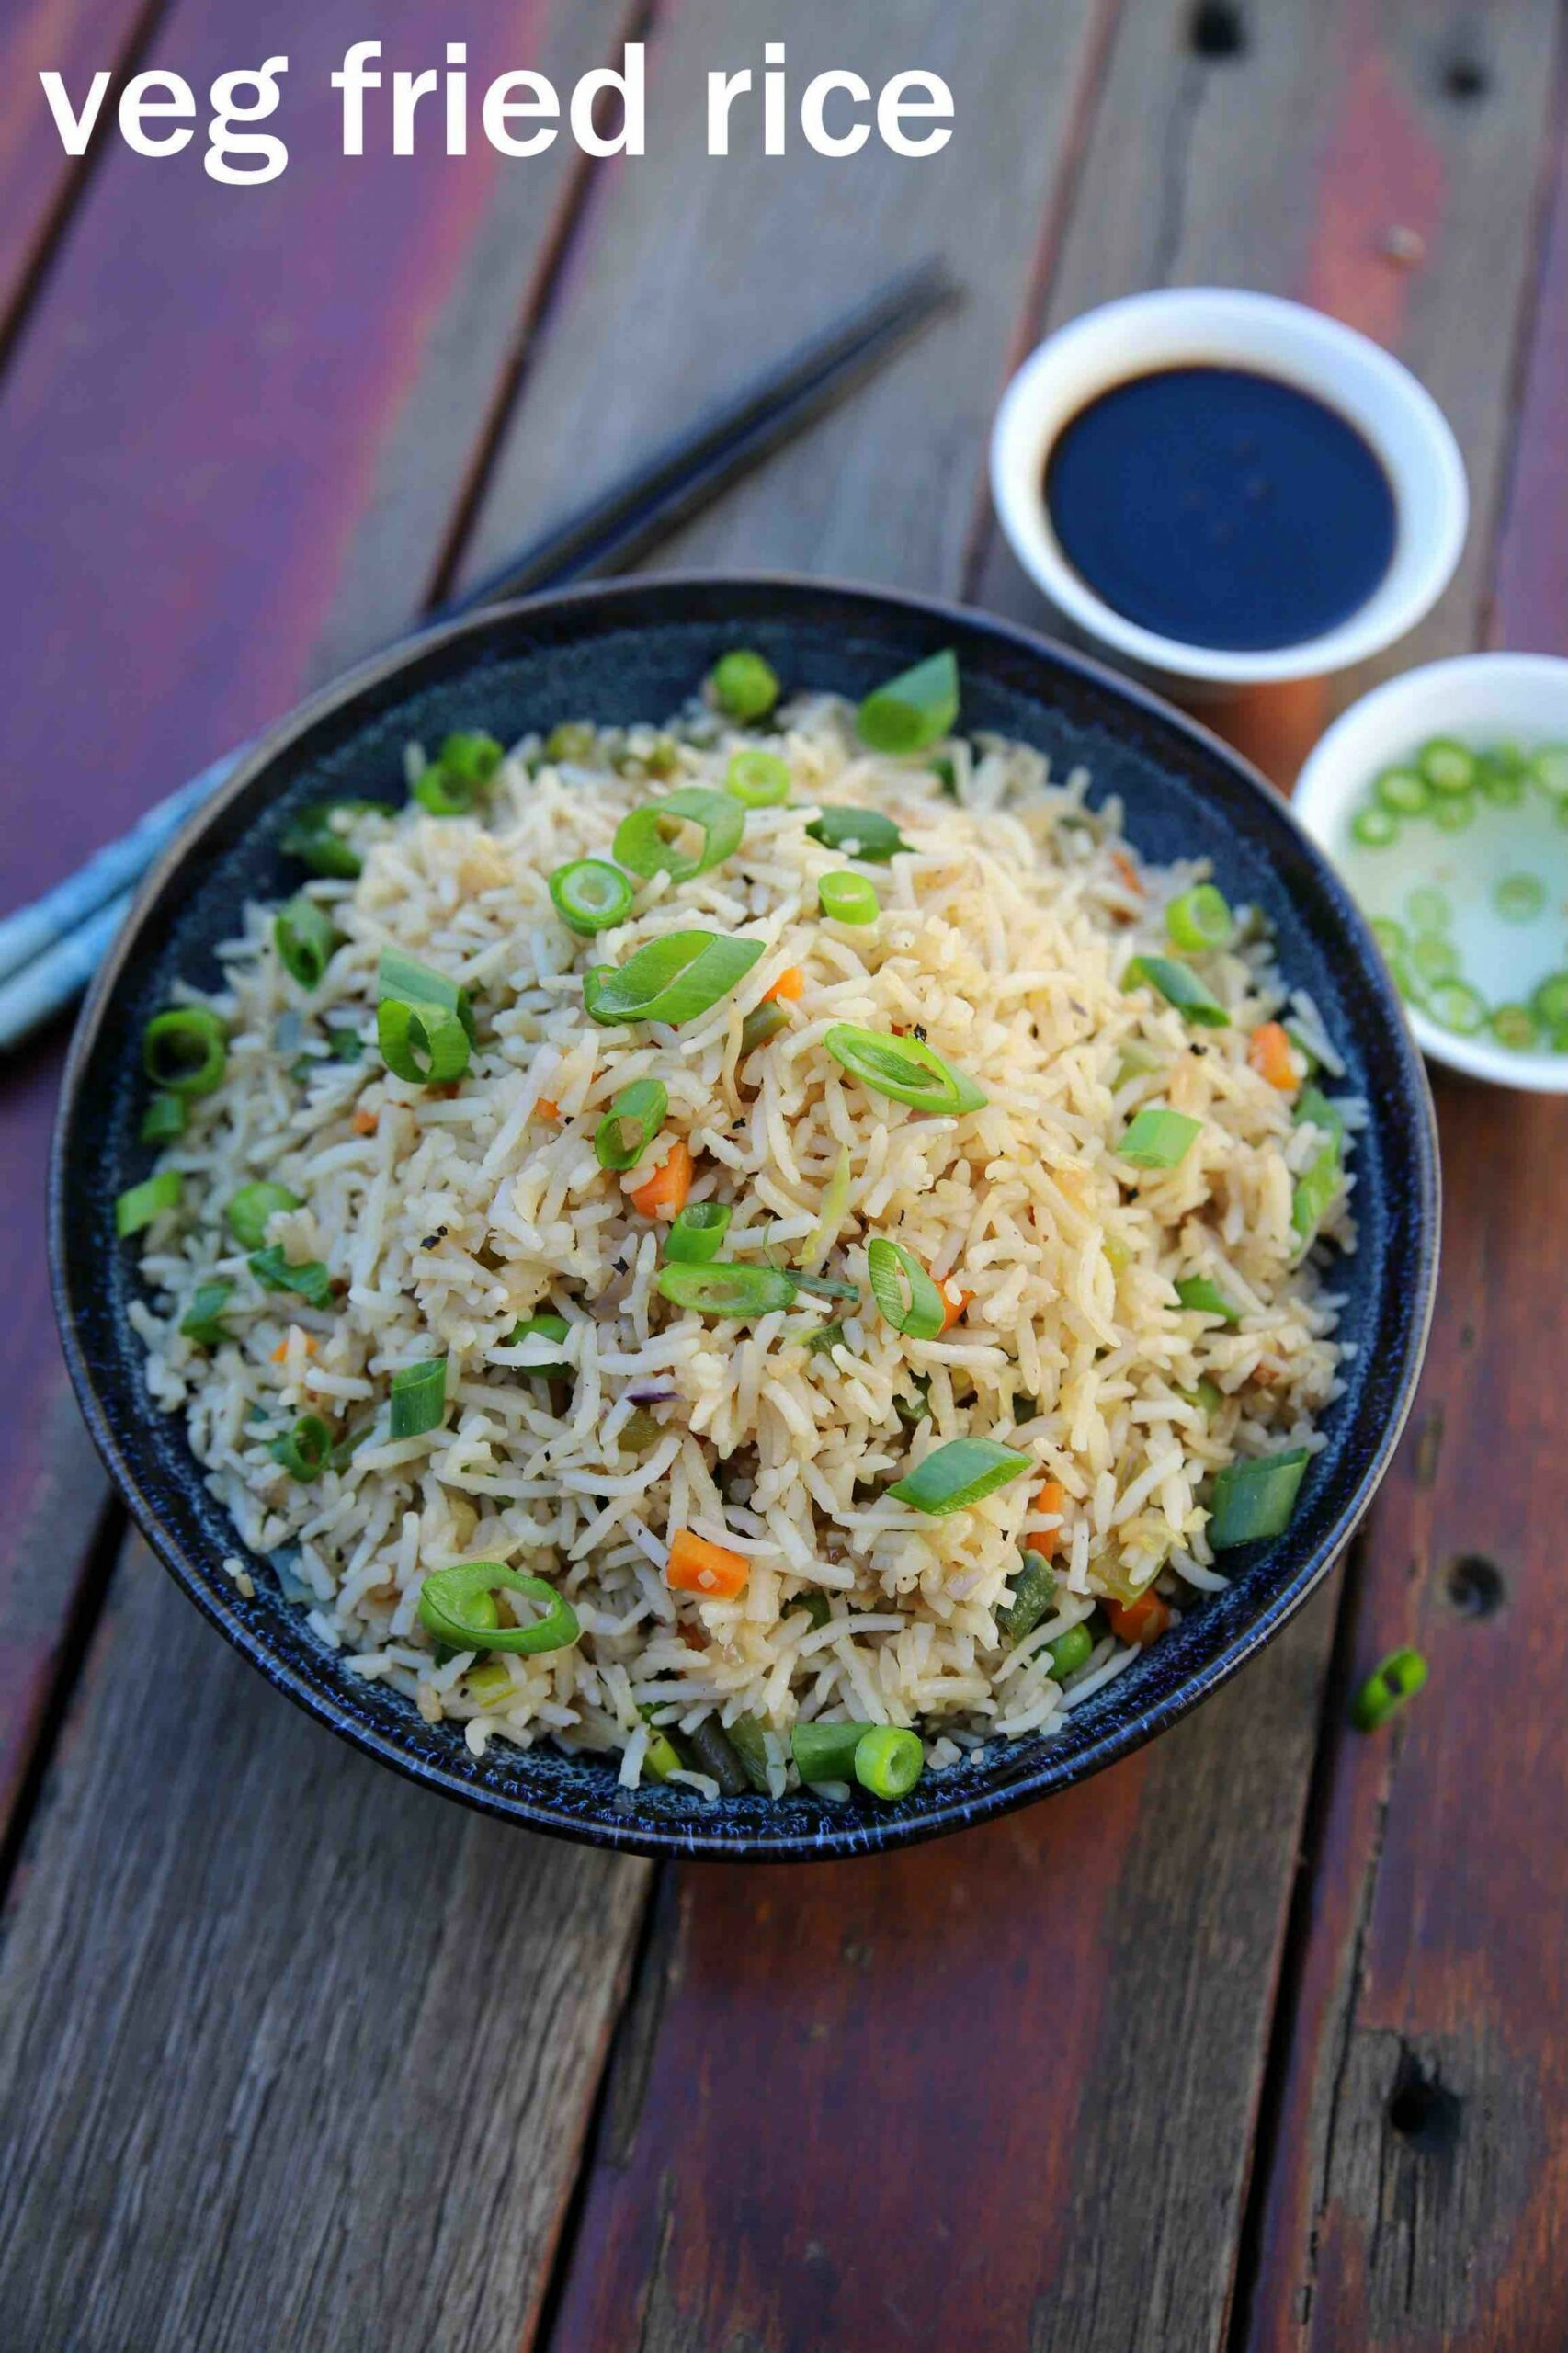 veg fried rice recipe | vegetable fried rice | chinese fried rice - Rice Recipes Veg